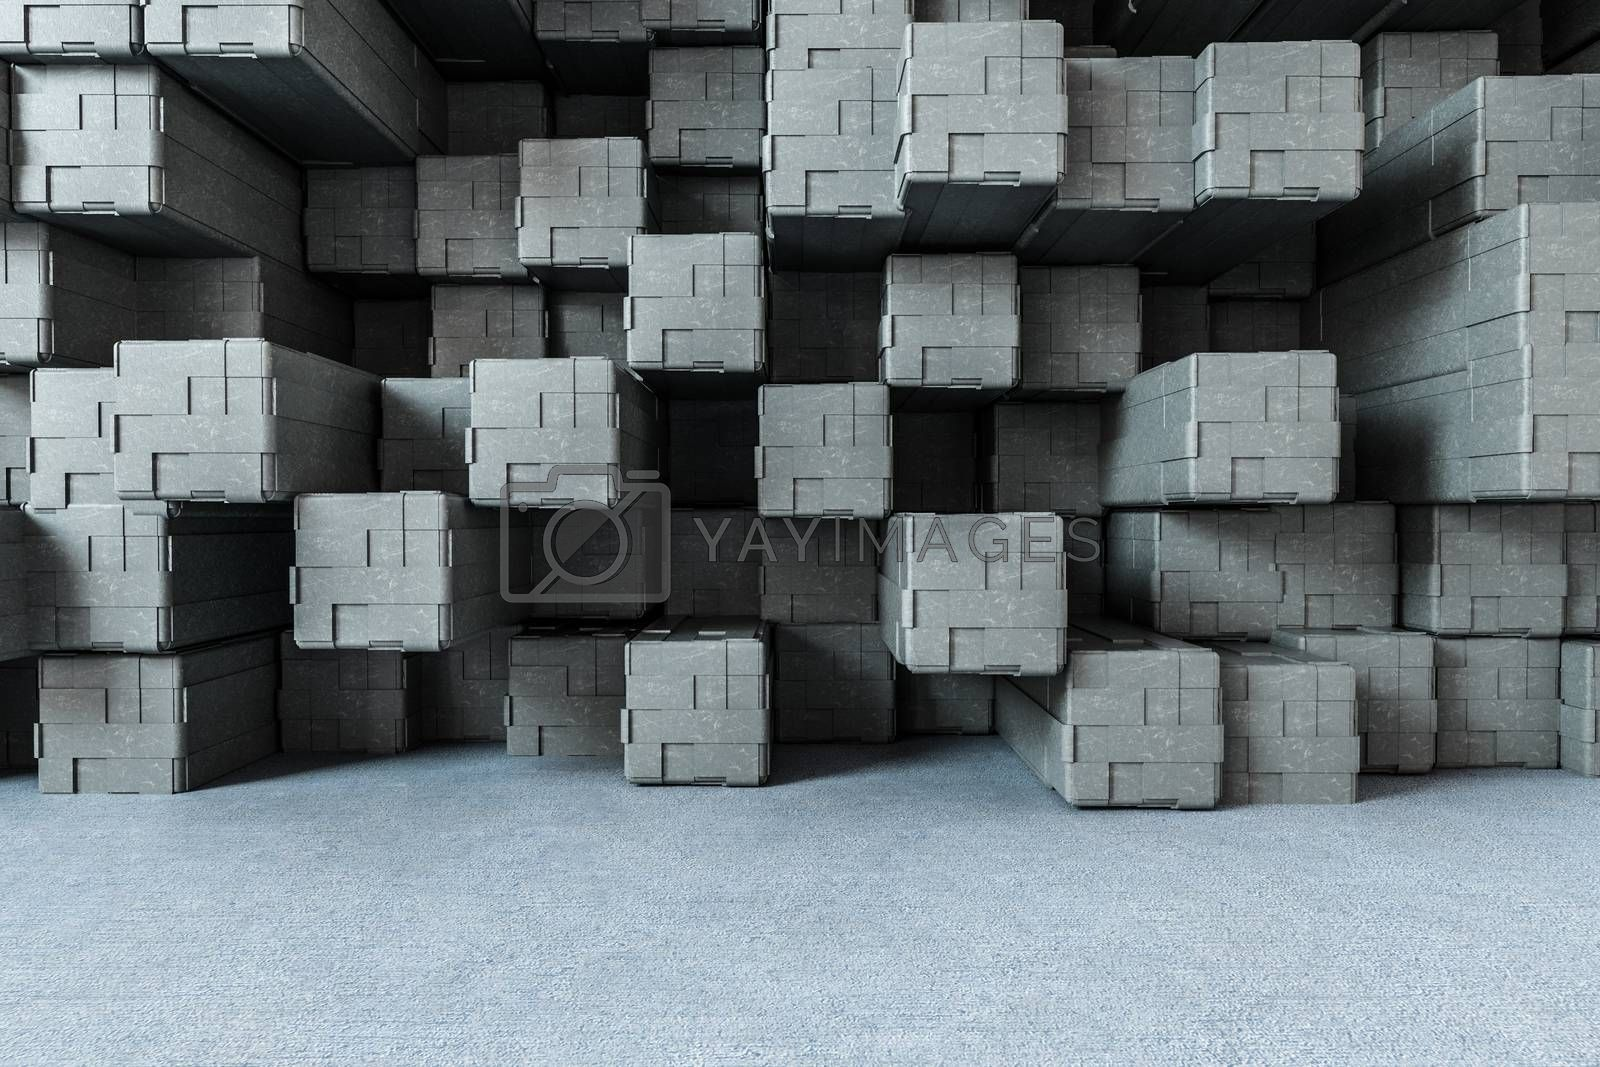 3d rendering, creative cubes wall with floor by vinkfan